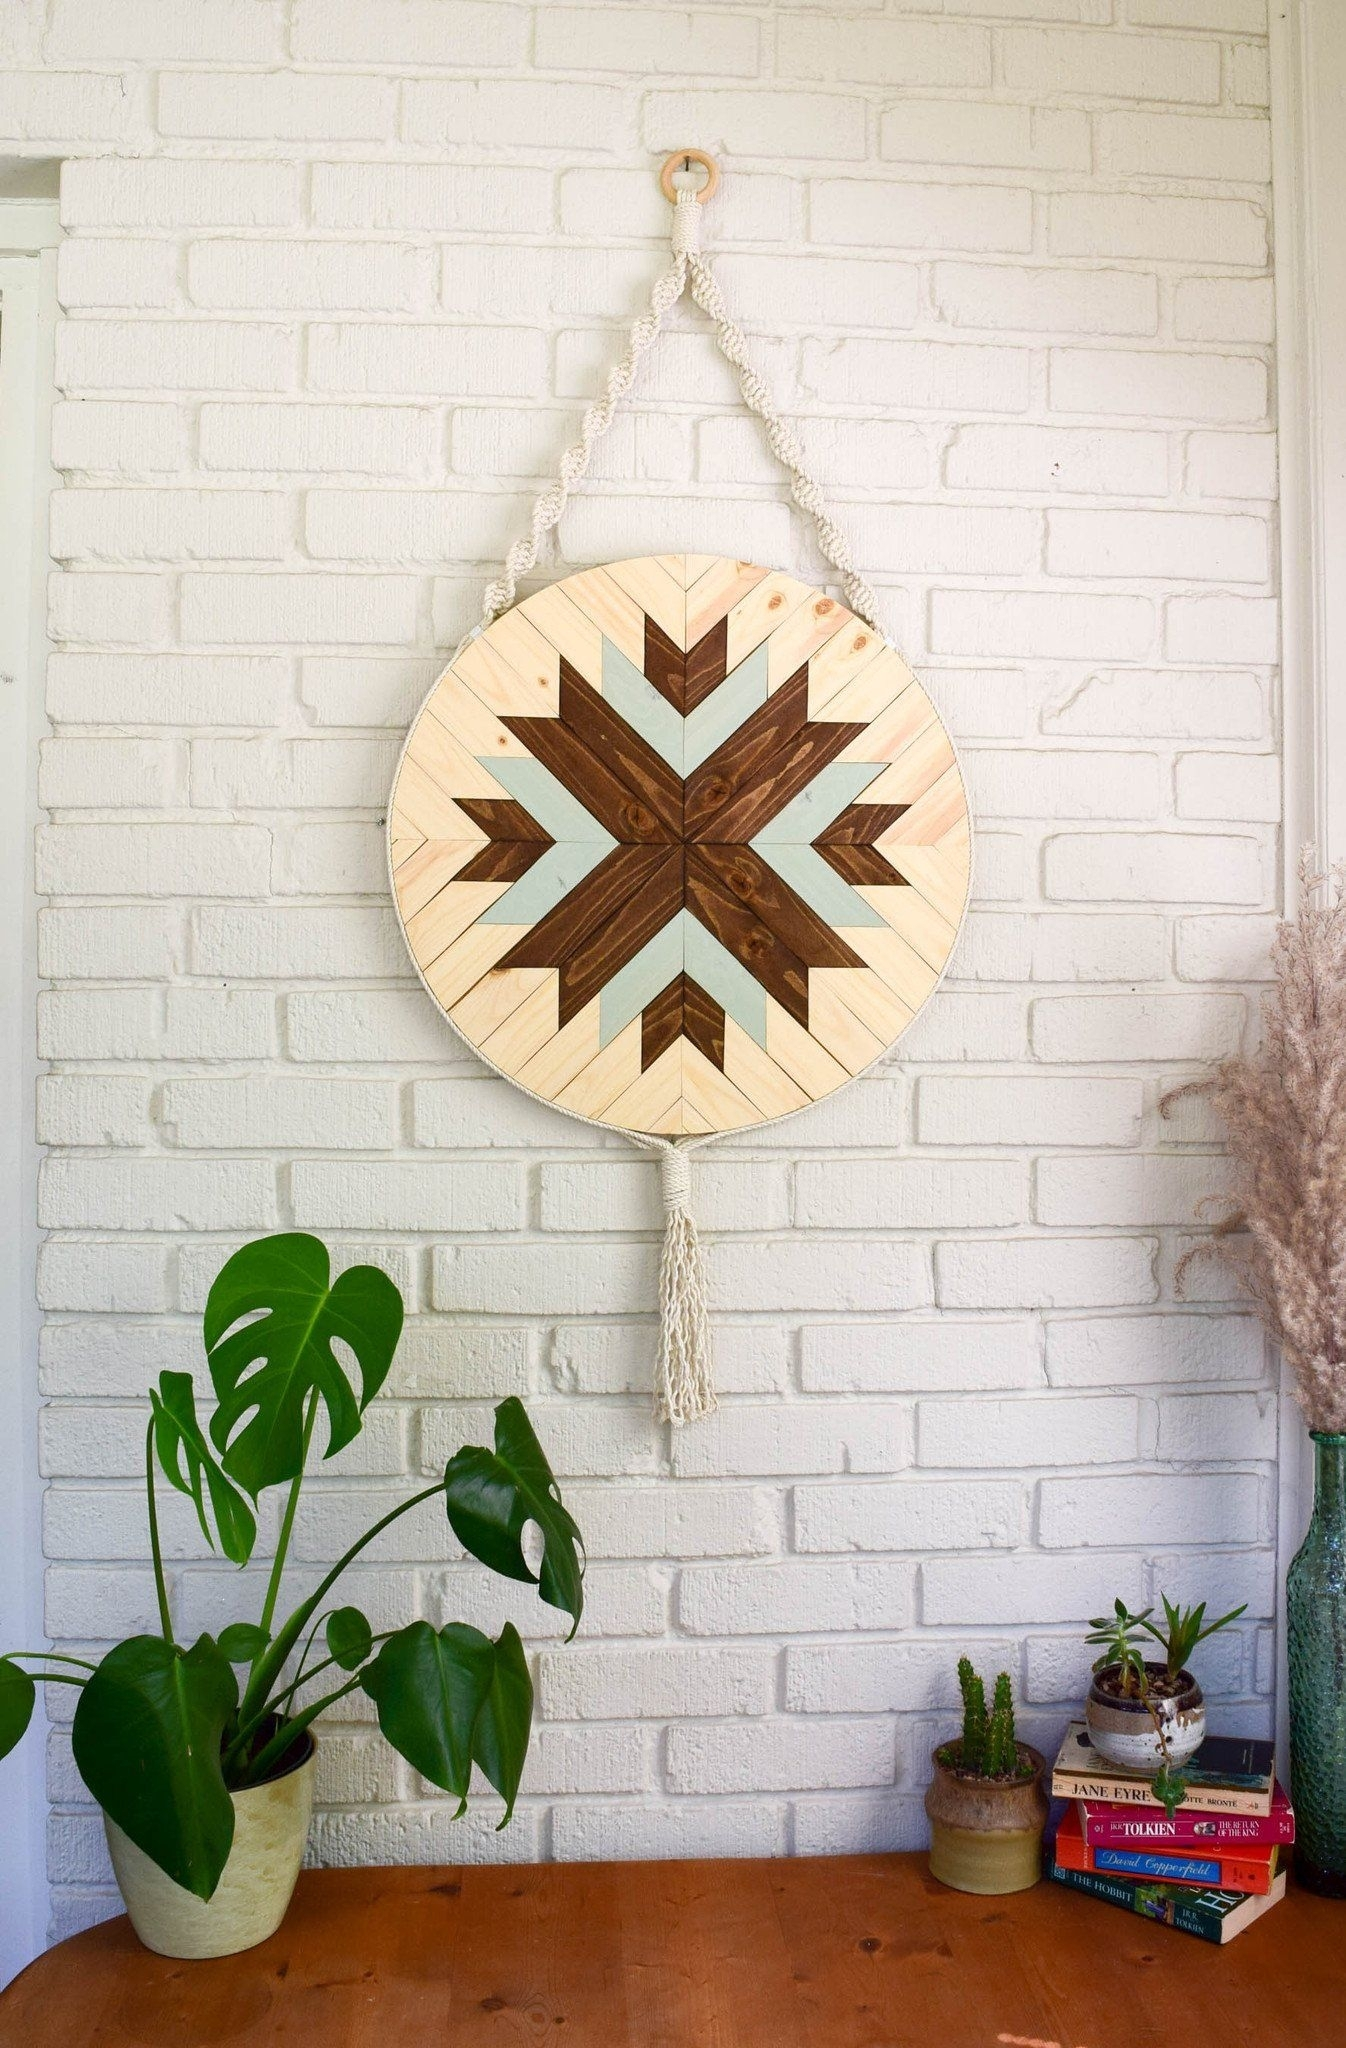 Labyrinth – Round Macrame Wood Wall Art Hanging | Pinterest | Wood Intended For 2018 Round Wood Wall Art (View 7 of 15)